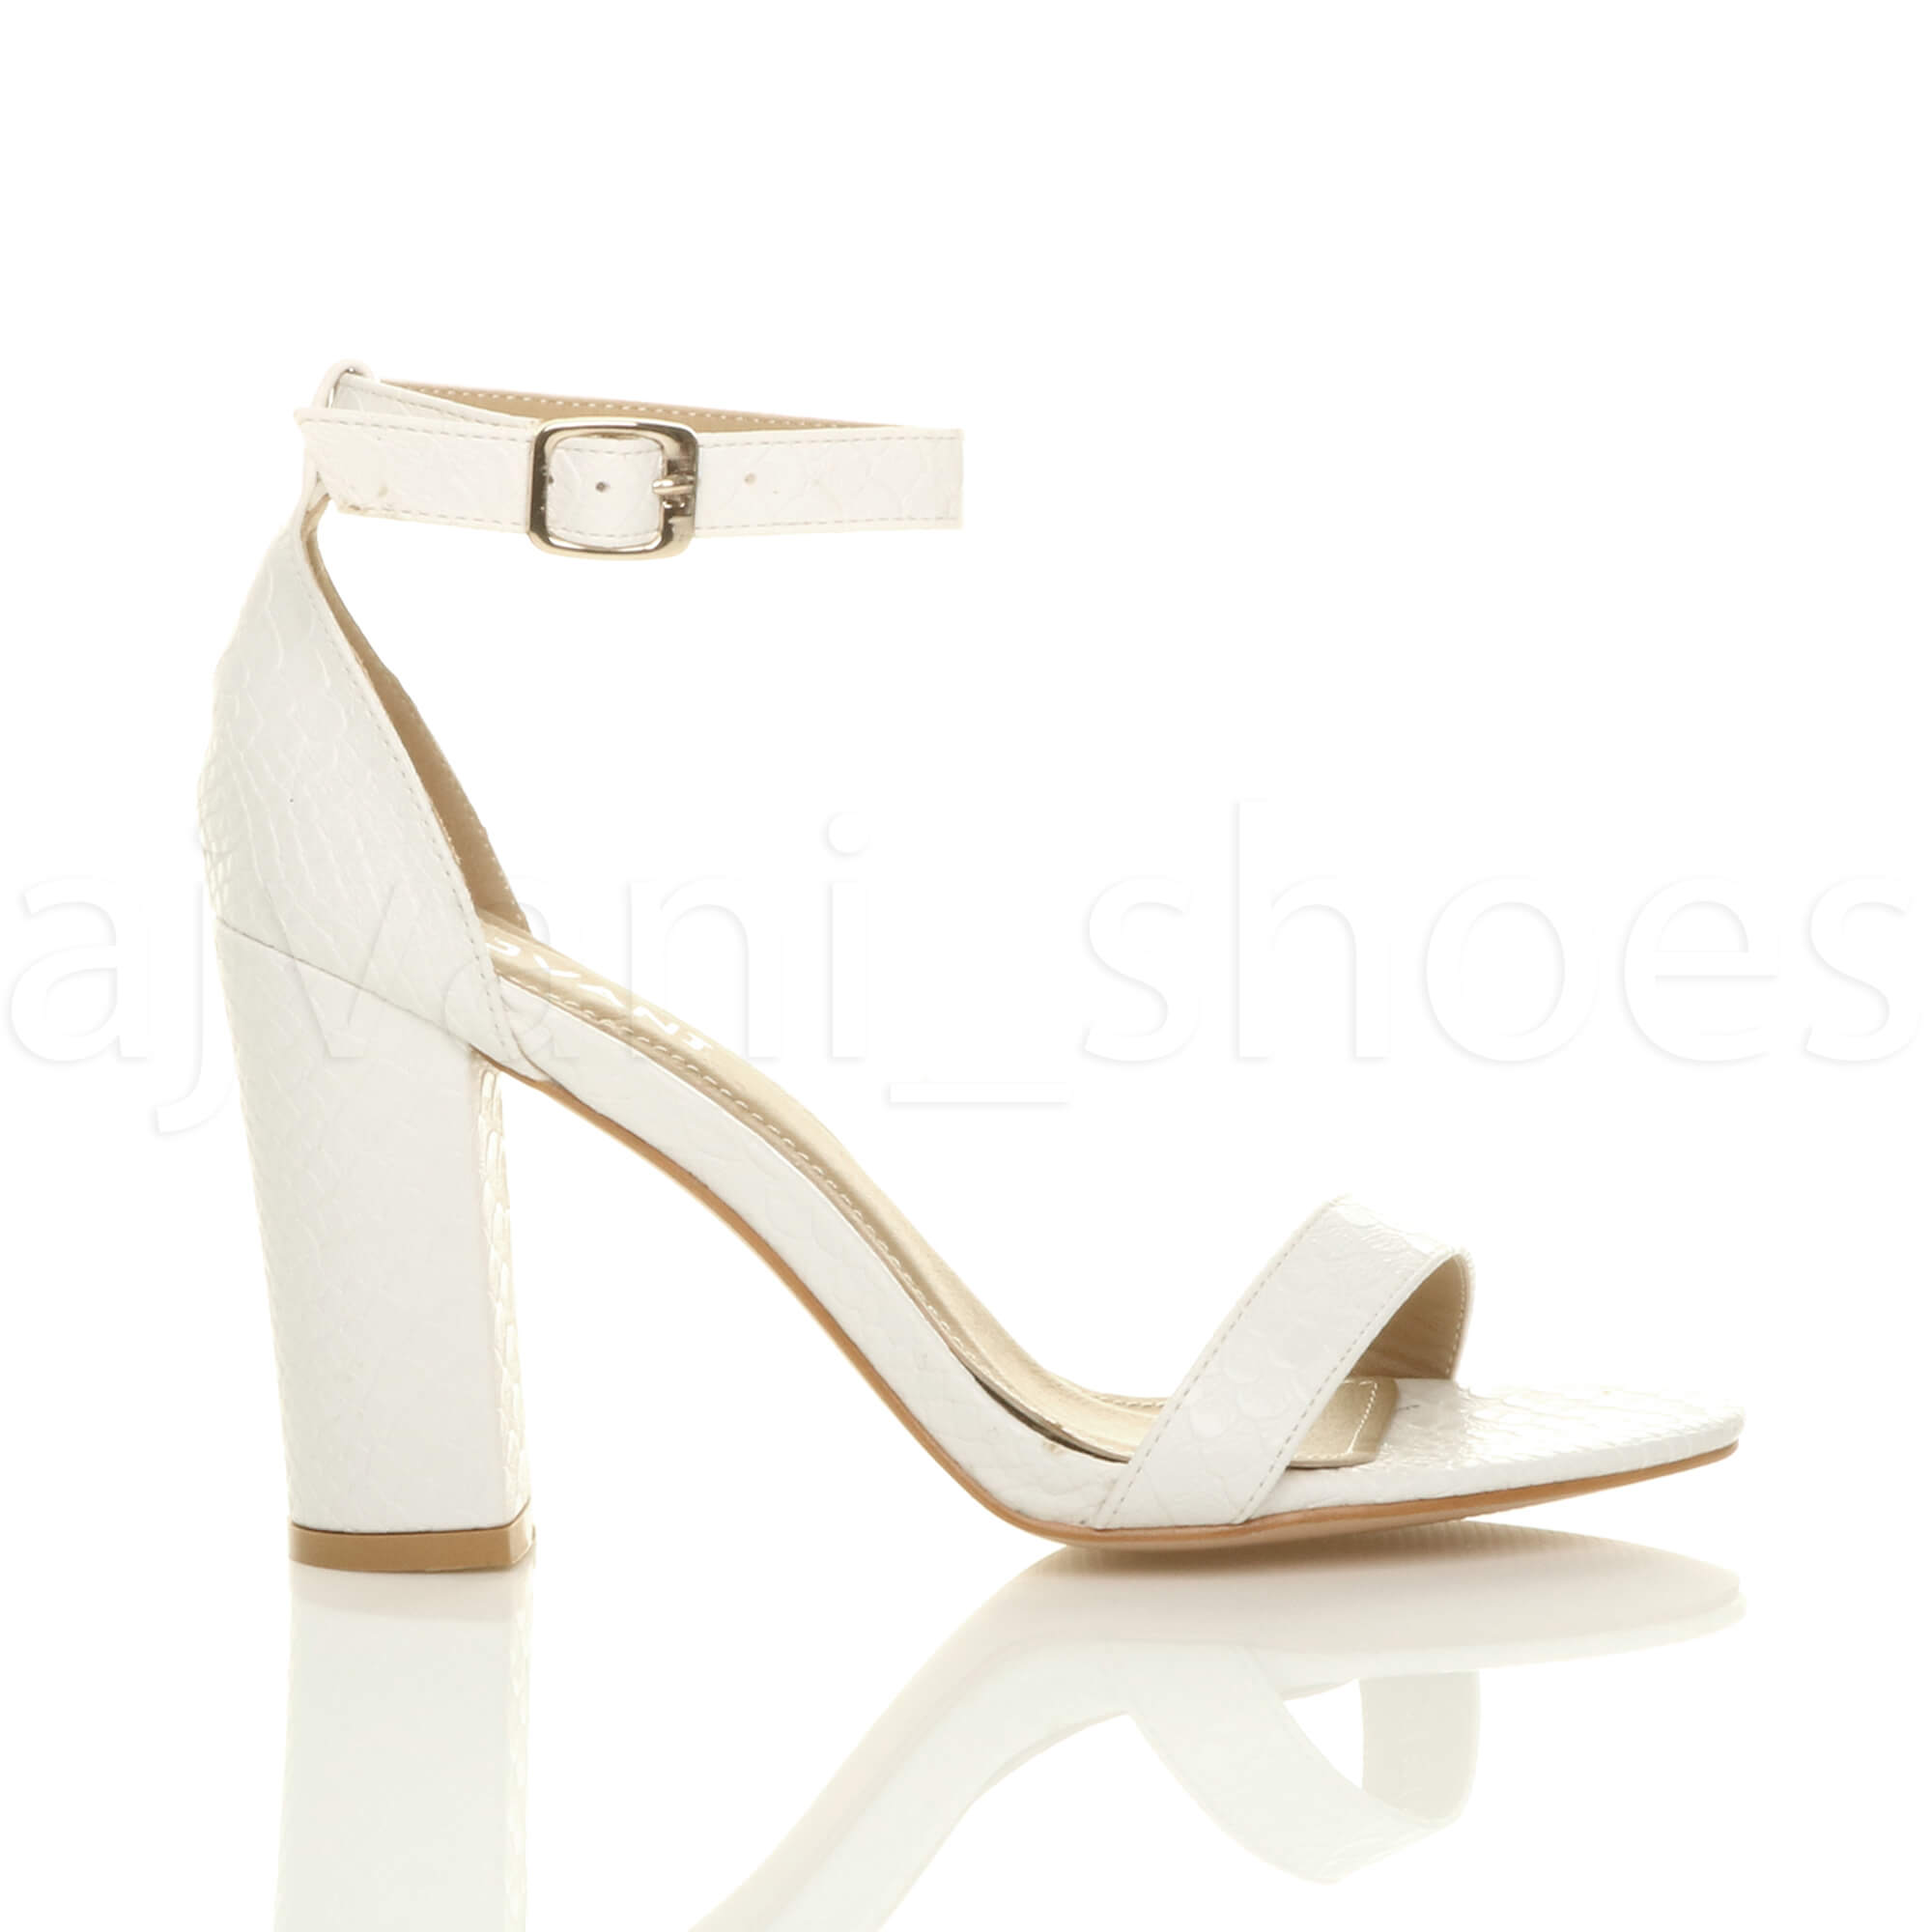 WOMENS-LADIES-BLOCK-HIGH-HEEL-ANKLE-STRAP-PEEP-TOE-STRAPPY-SANDALS-SHOES-SIZE thumbnail 175